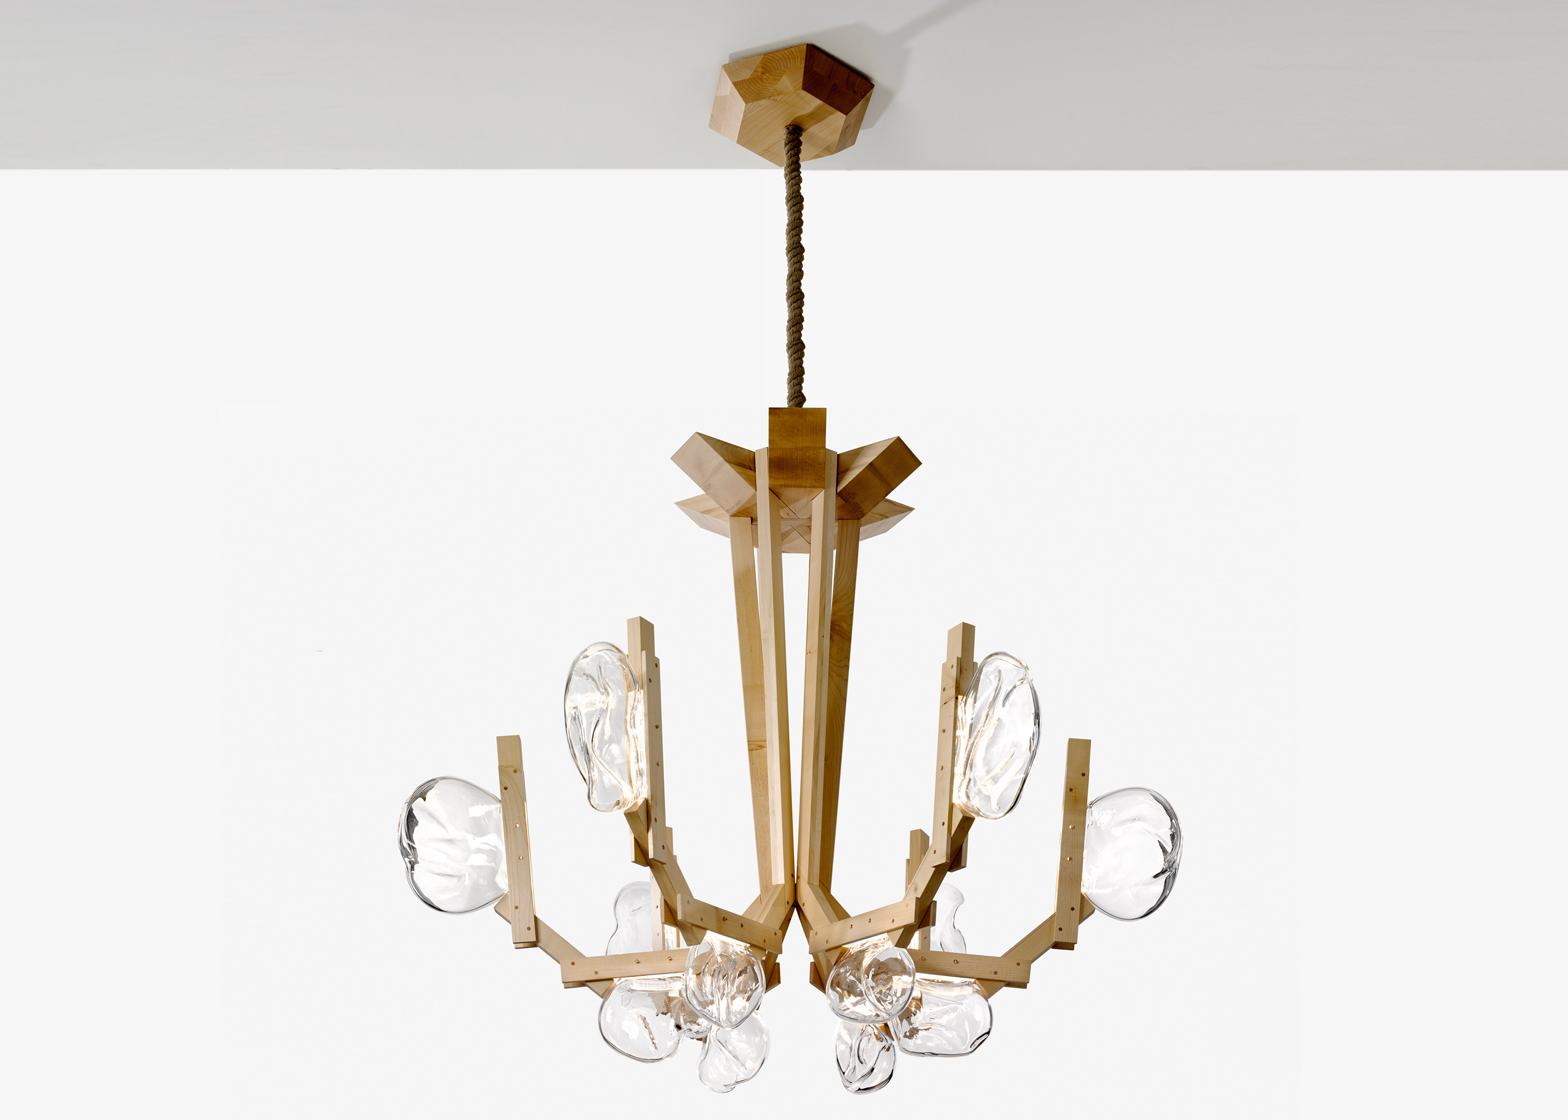 Simple Campana brothers to present mushroom like Fungo chandelier for Lasvit at Maison uObjet